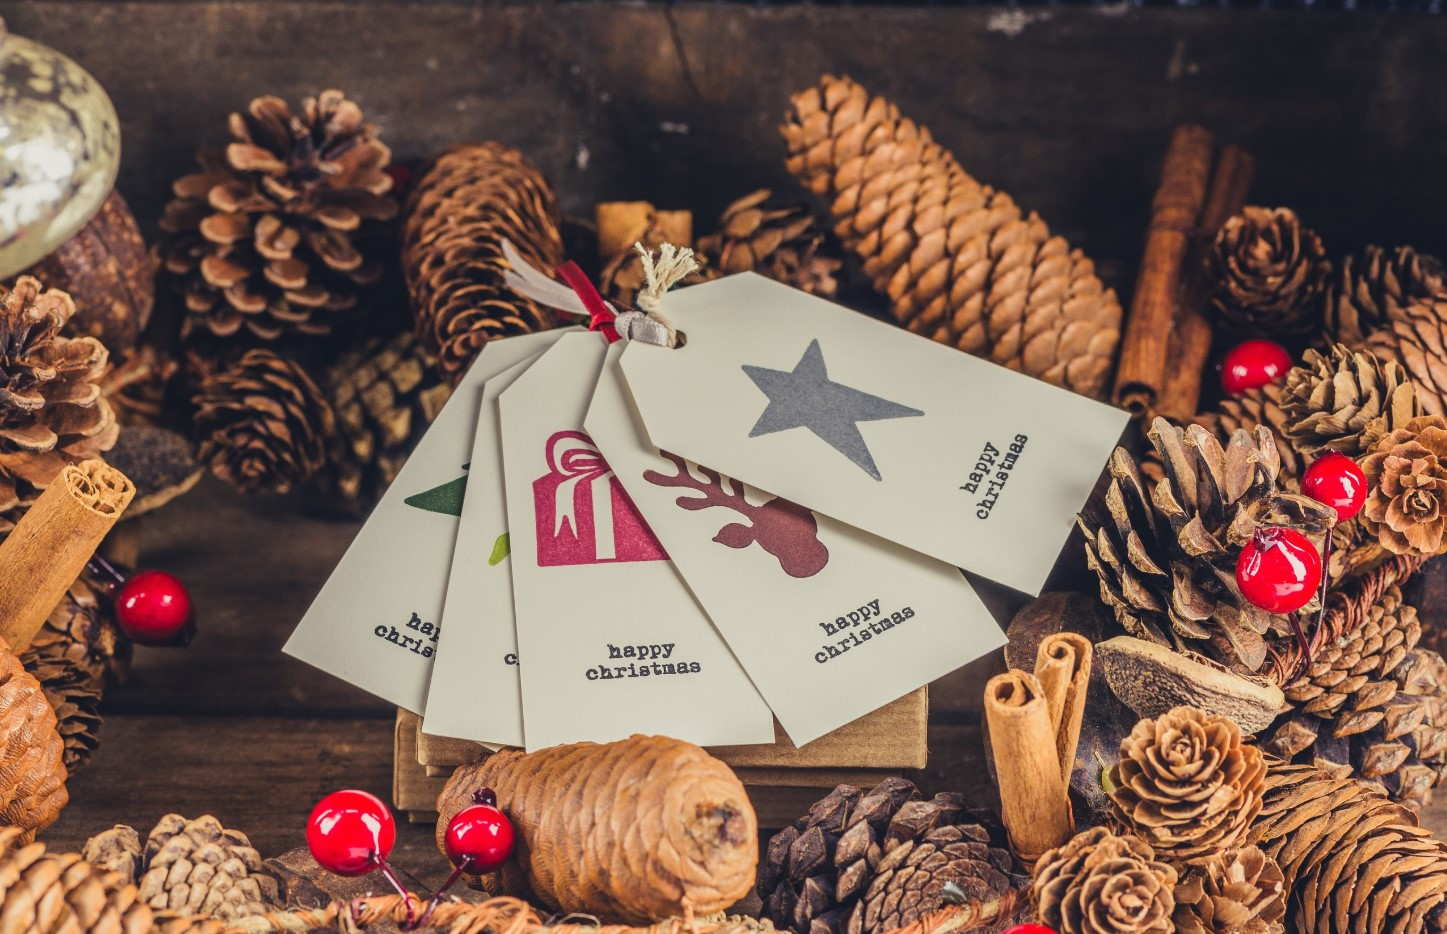 Christian Christmas Greetings.100 Free Christian Christmas Card Images Stock Photos